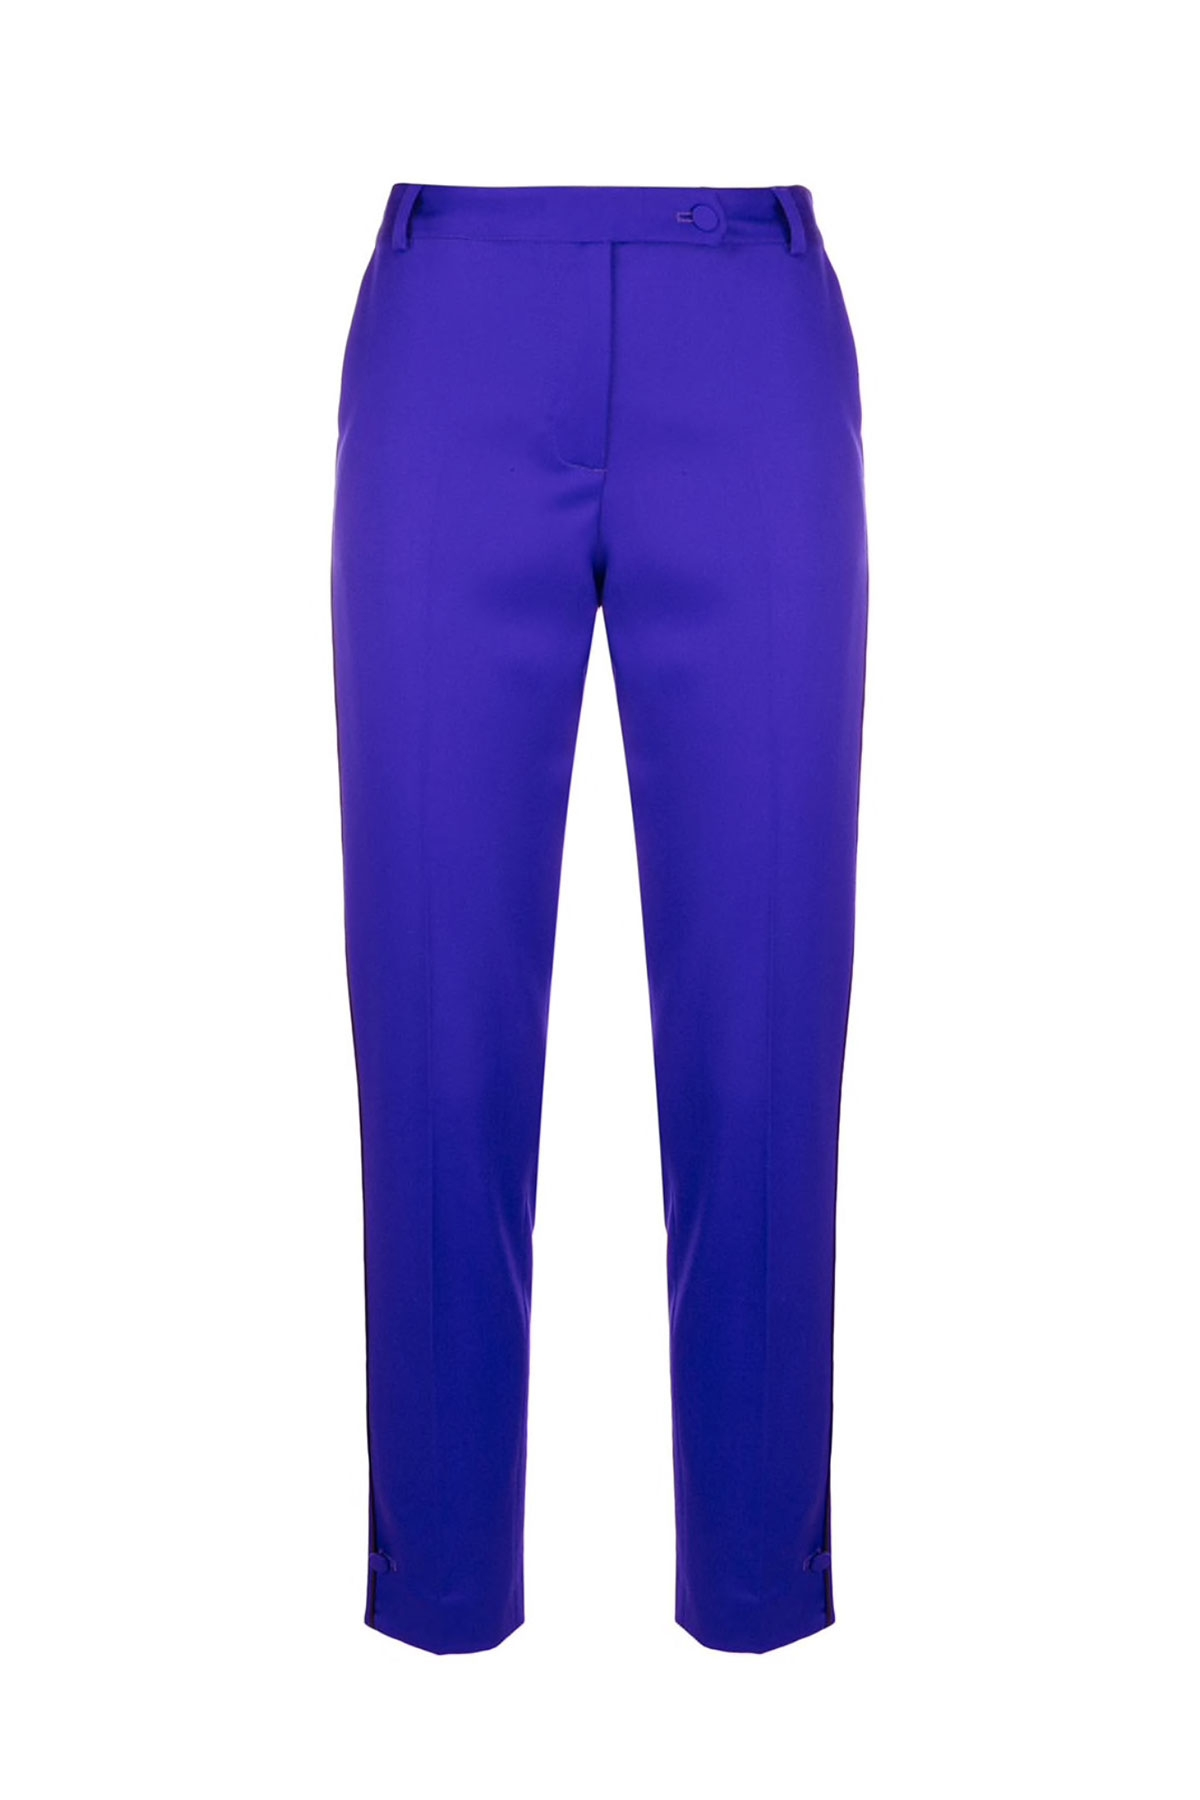 PURPLE TAILORED WOOL CIGARETTE PANTS WITH BUTTON CUFF